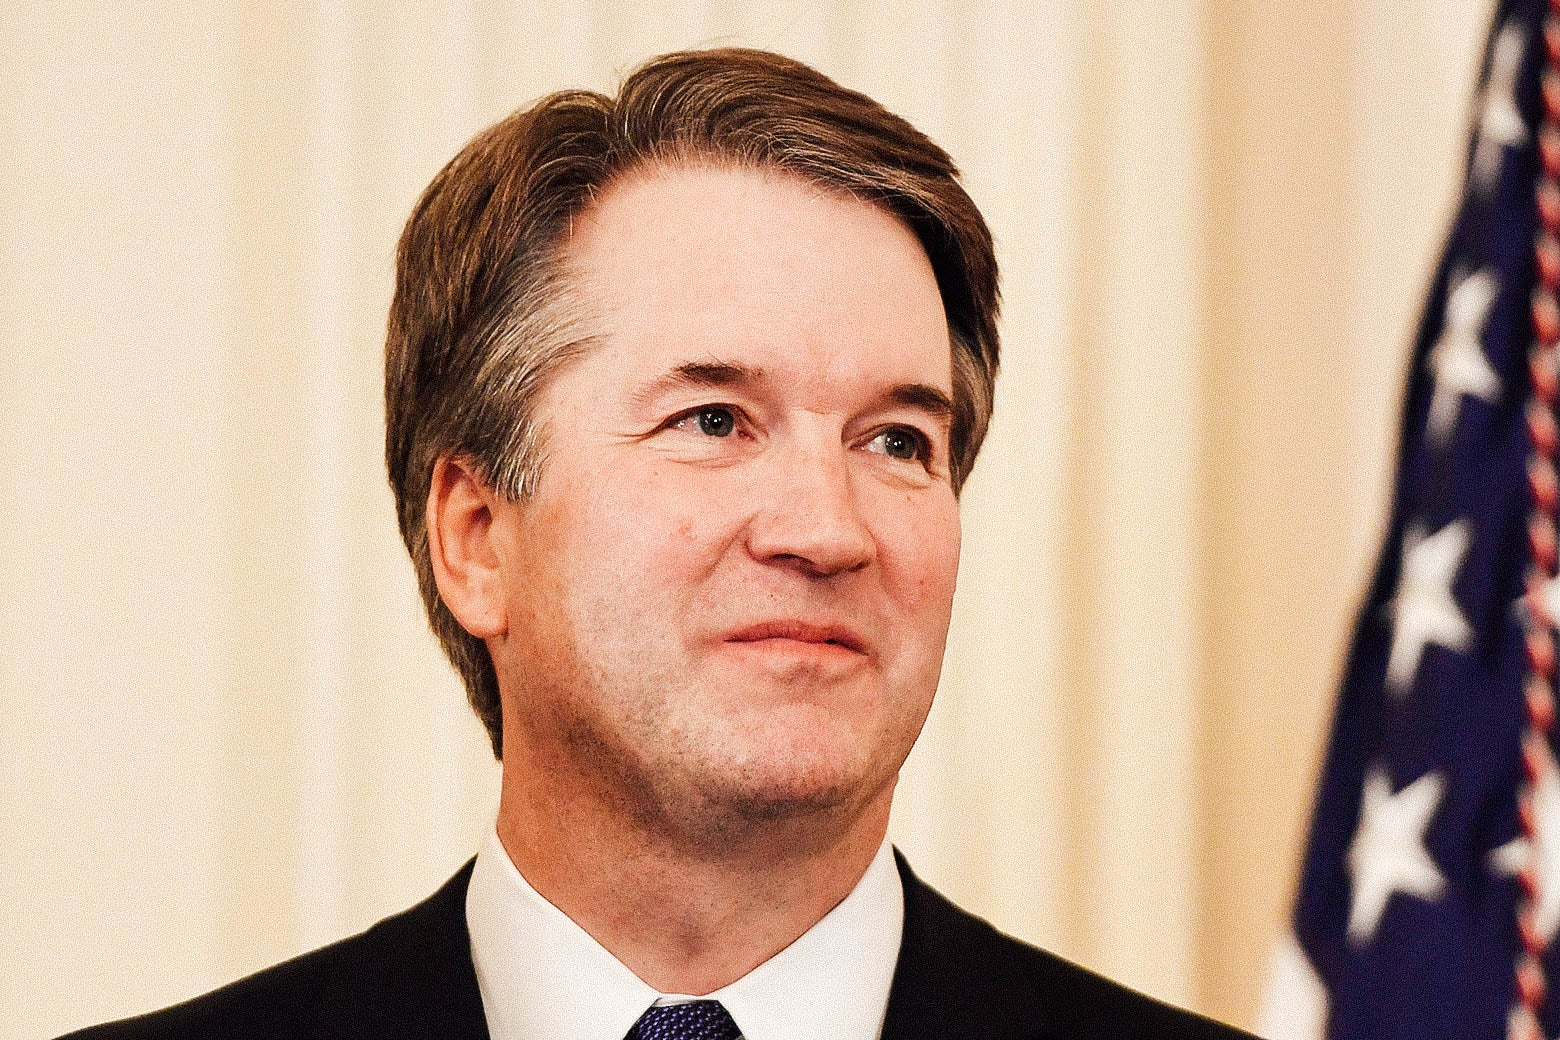 Brett Kavanaugh looks on as Donald Trump announces him as his nominee to the Supreme Court.